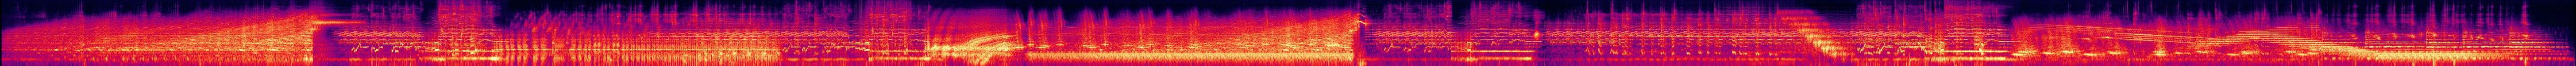 The Visitation - Spectrogram.jpg